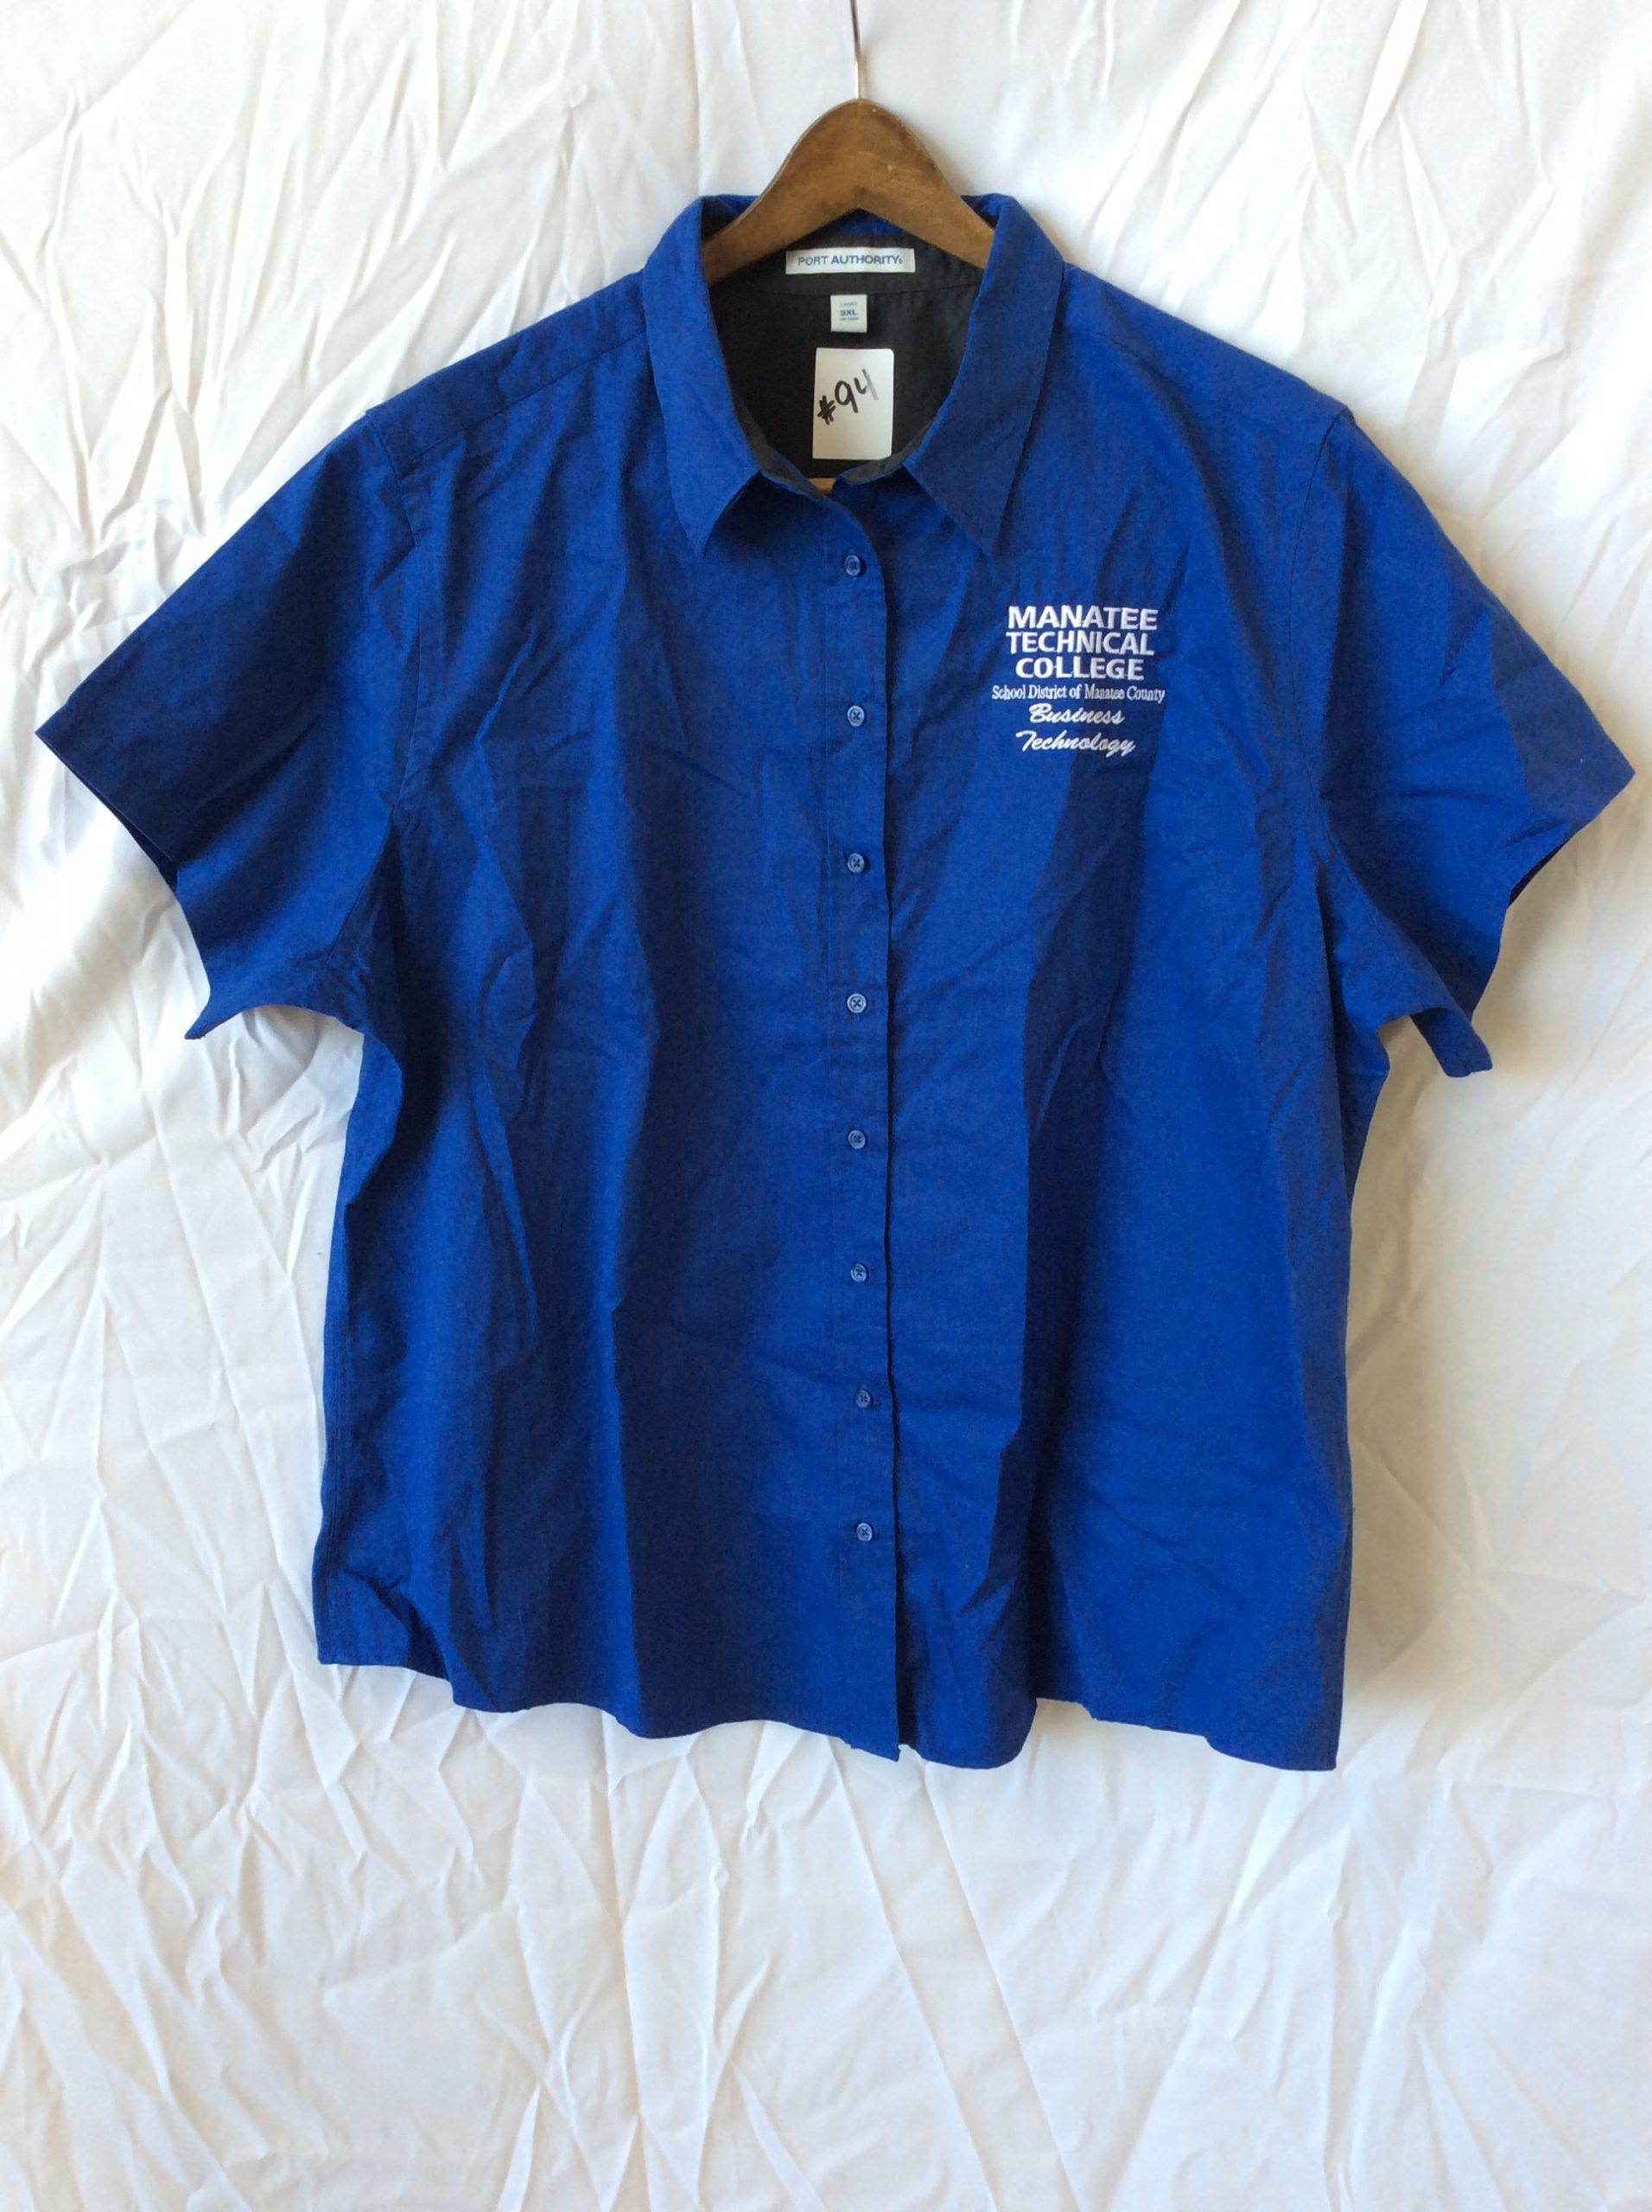 Women's button up tech college top, size large (25 total)